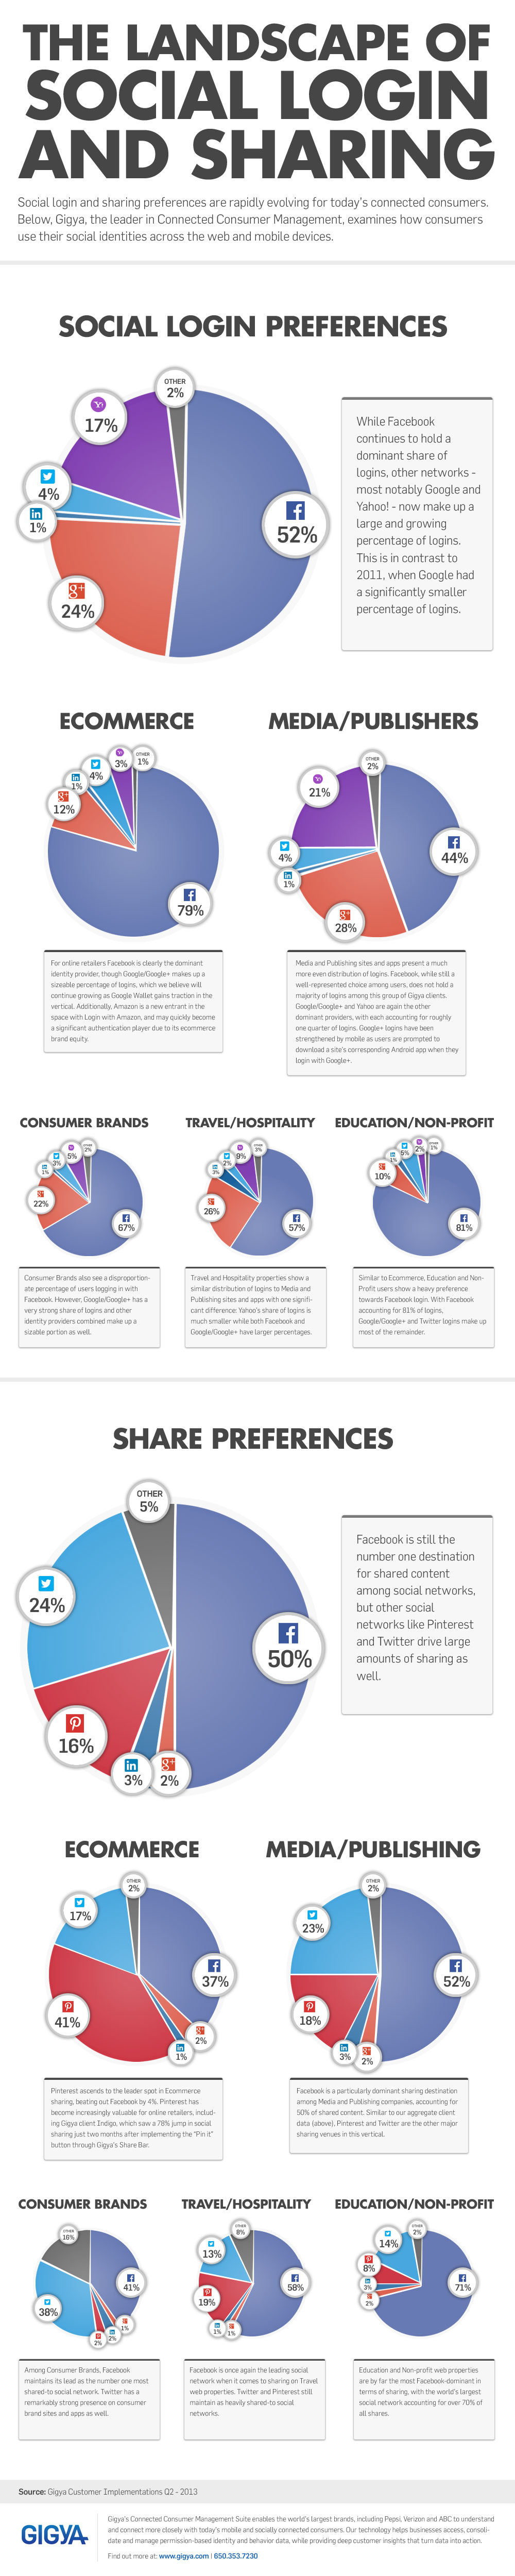 Infographic showing data on social logins and social sharing